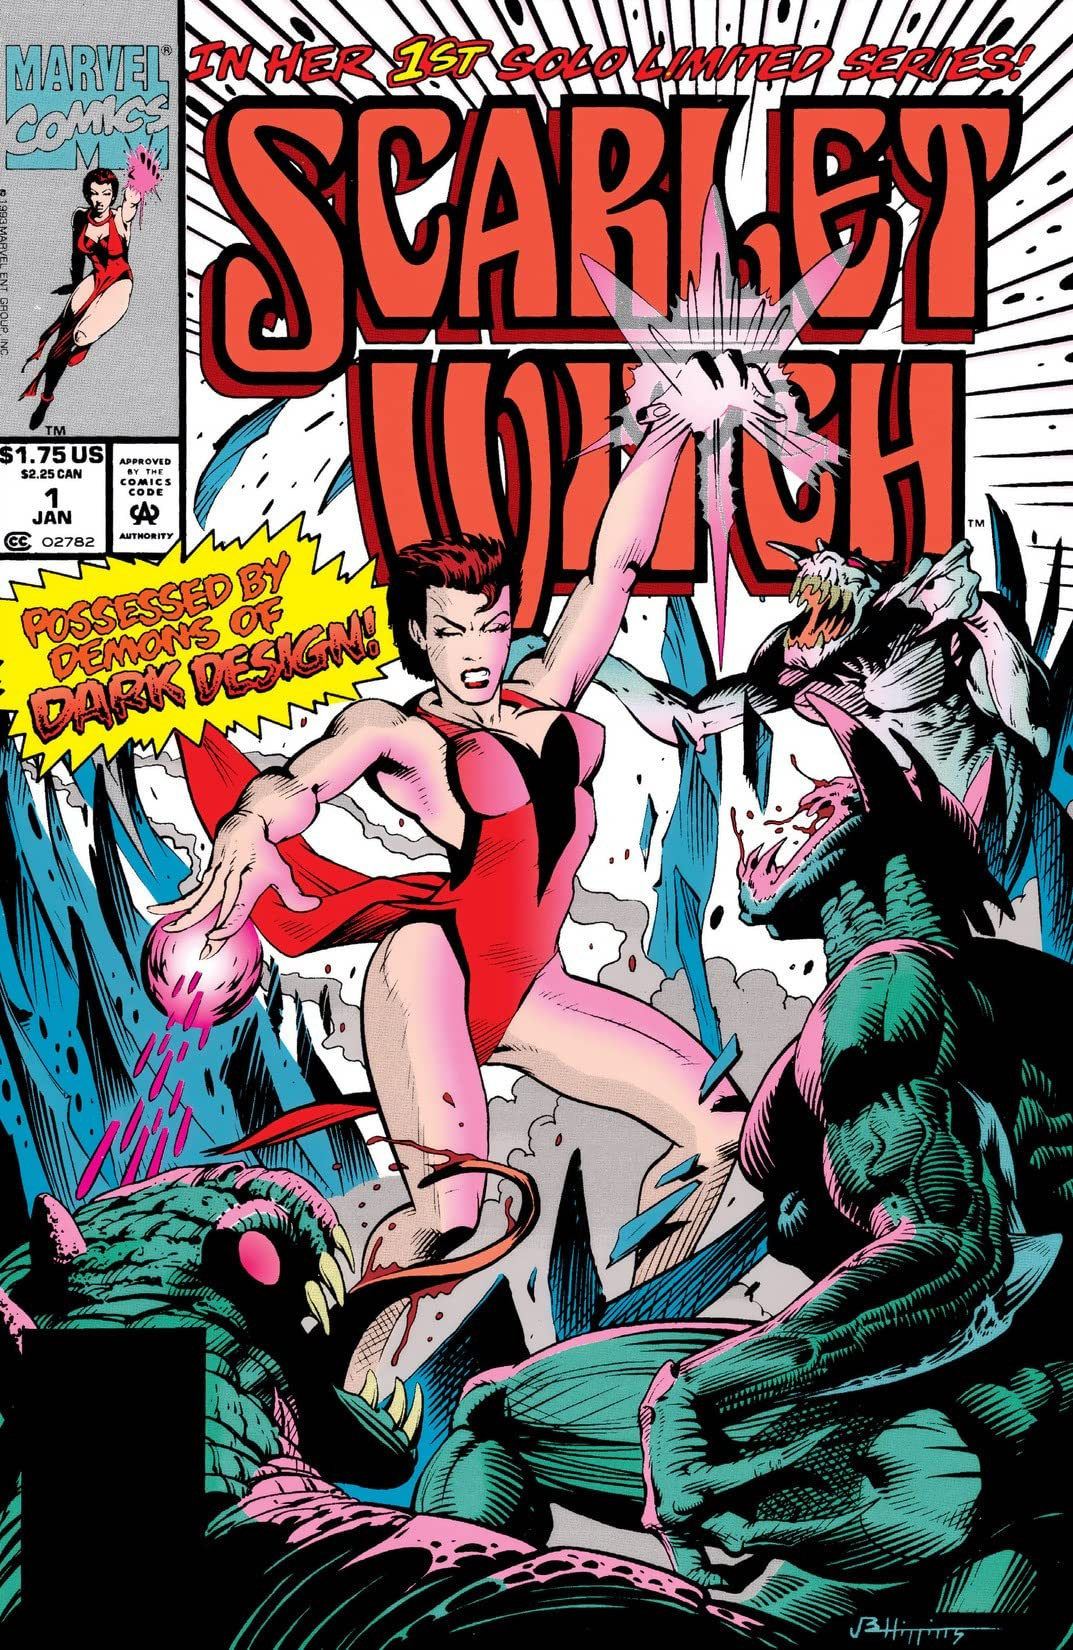 Scarlet Witch (1994) #1 (of 4)